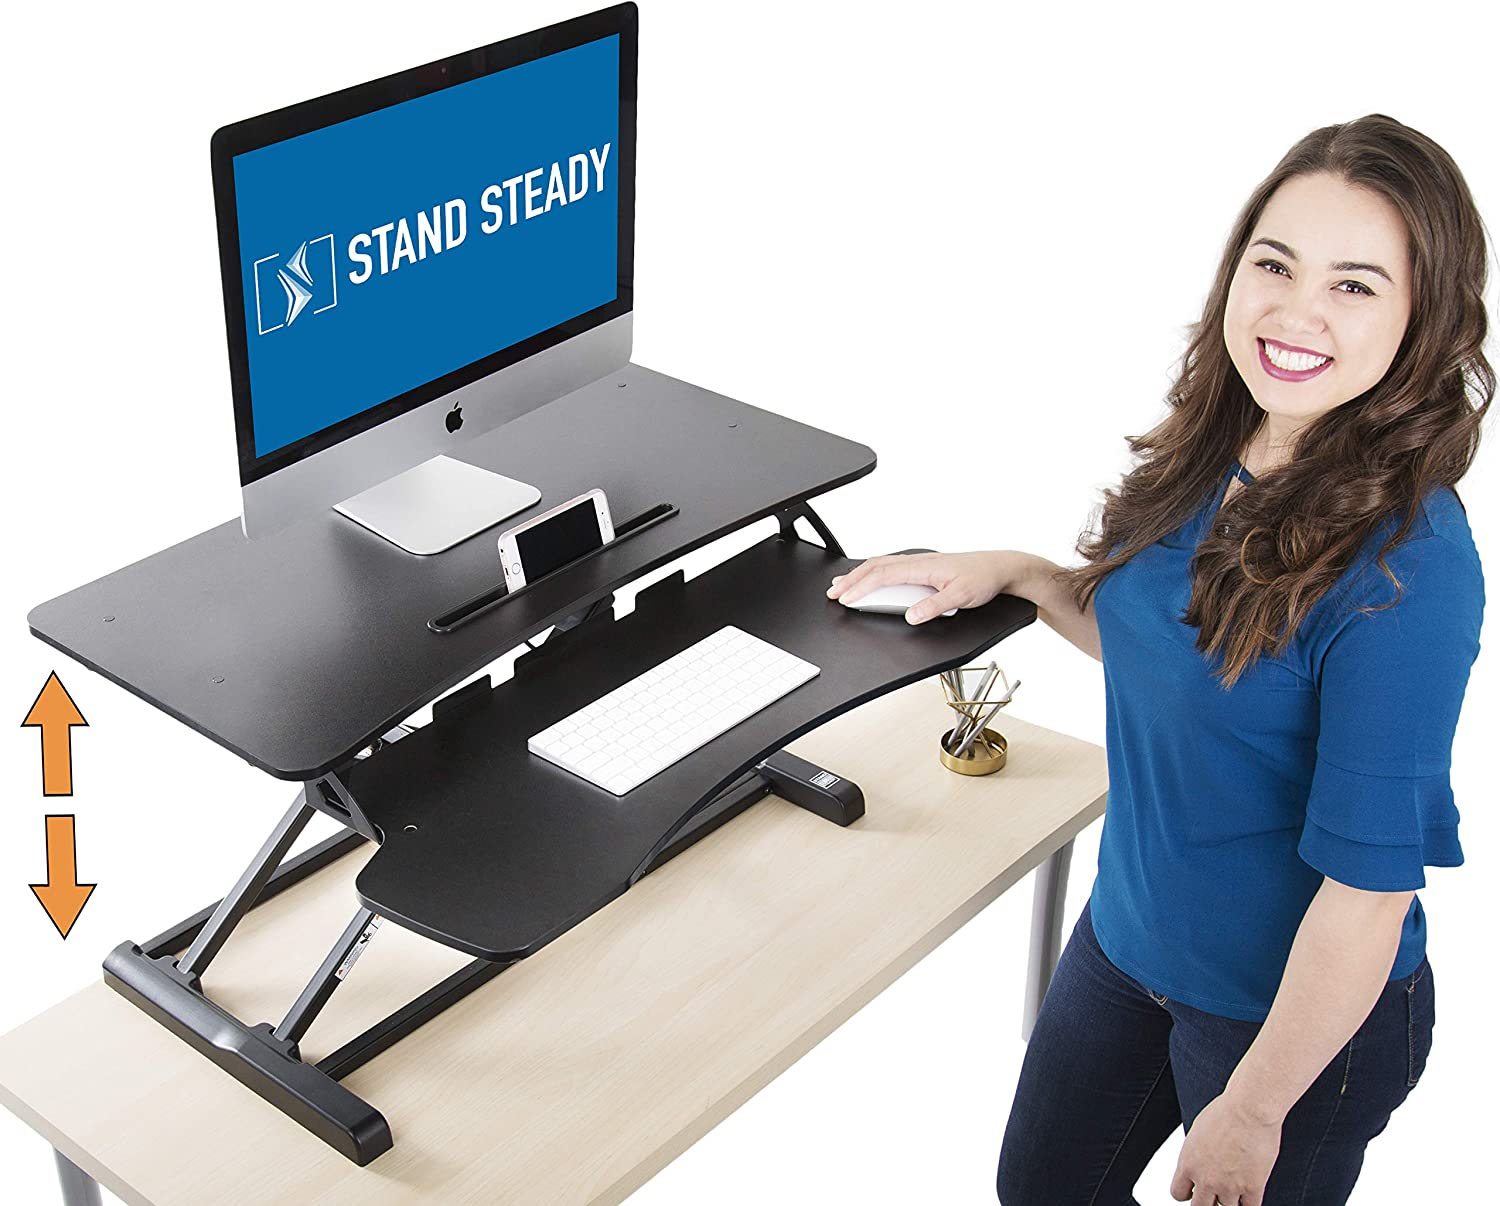 Stand Steady Flexpro Hero Two Level Standing Desk – Easily Sit or Stand in Seconds Large Work Space w Removable Extra Level for Keyboard Mouse Regular 32